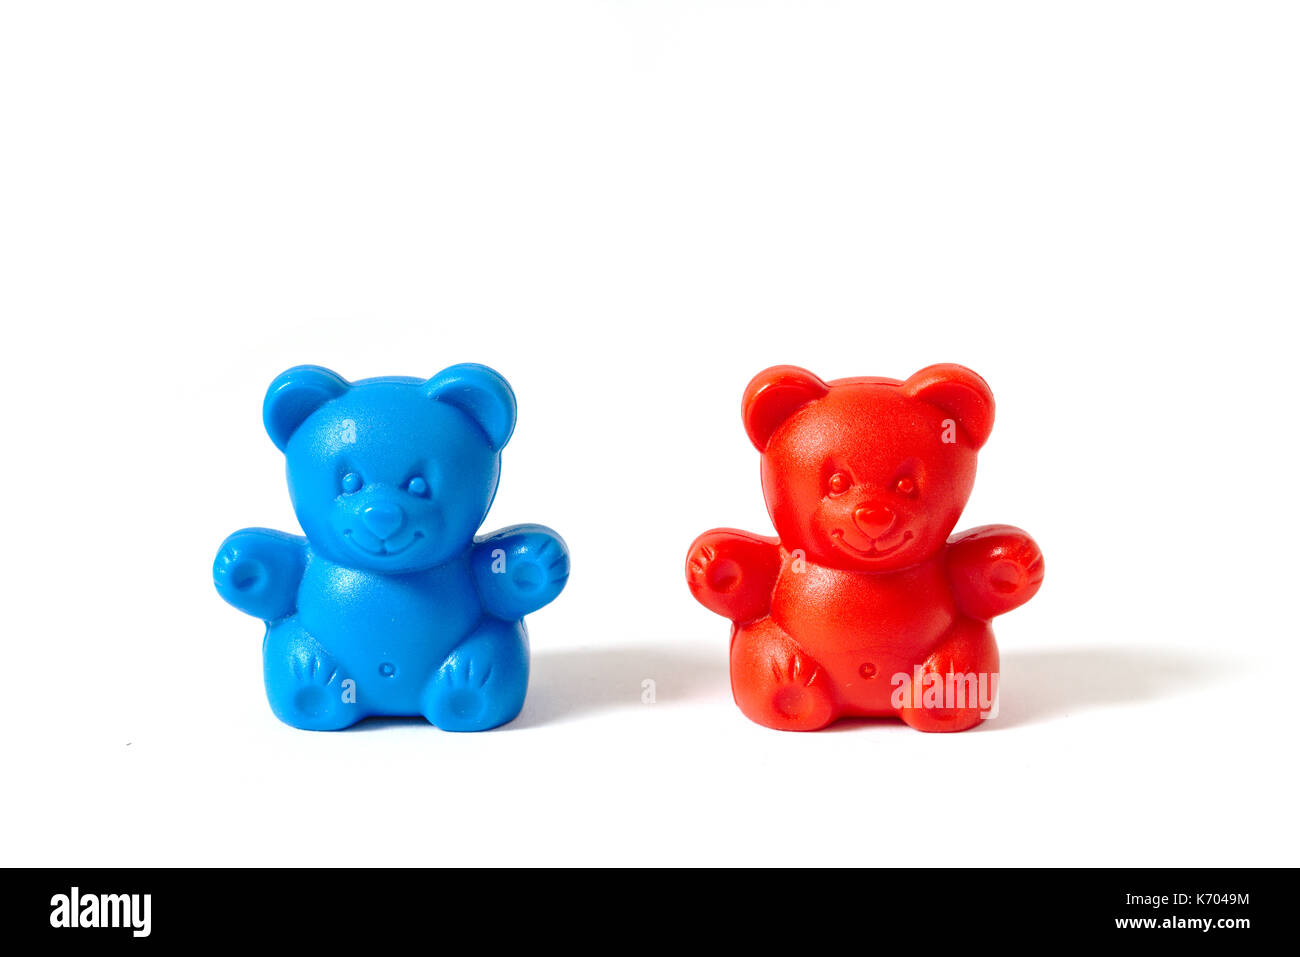 Small red and blue plastic toy bears isolated on white background - Stock Image